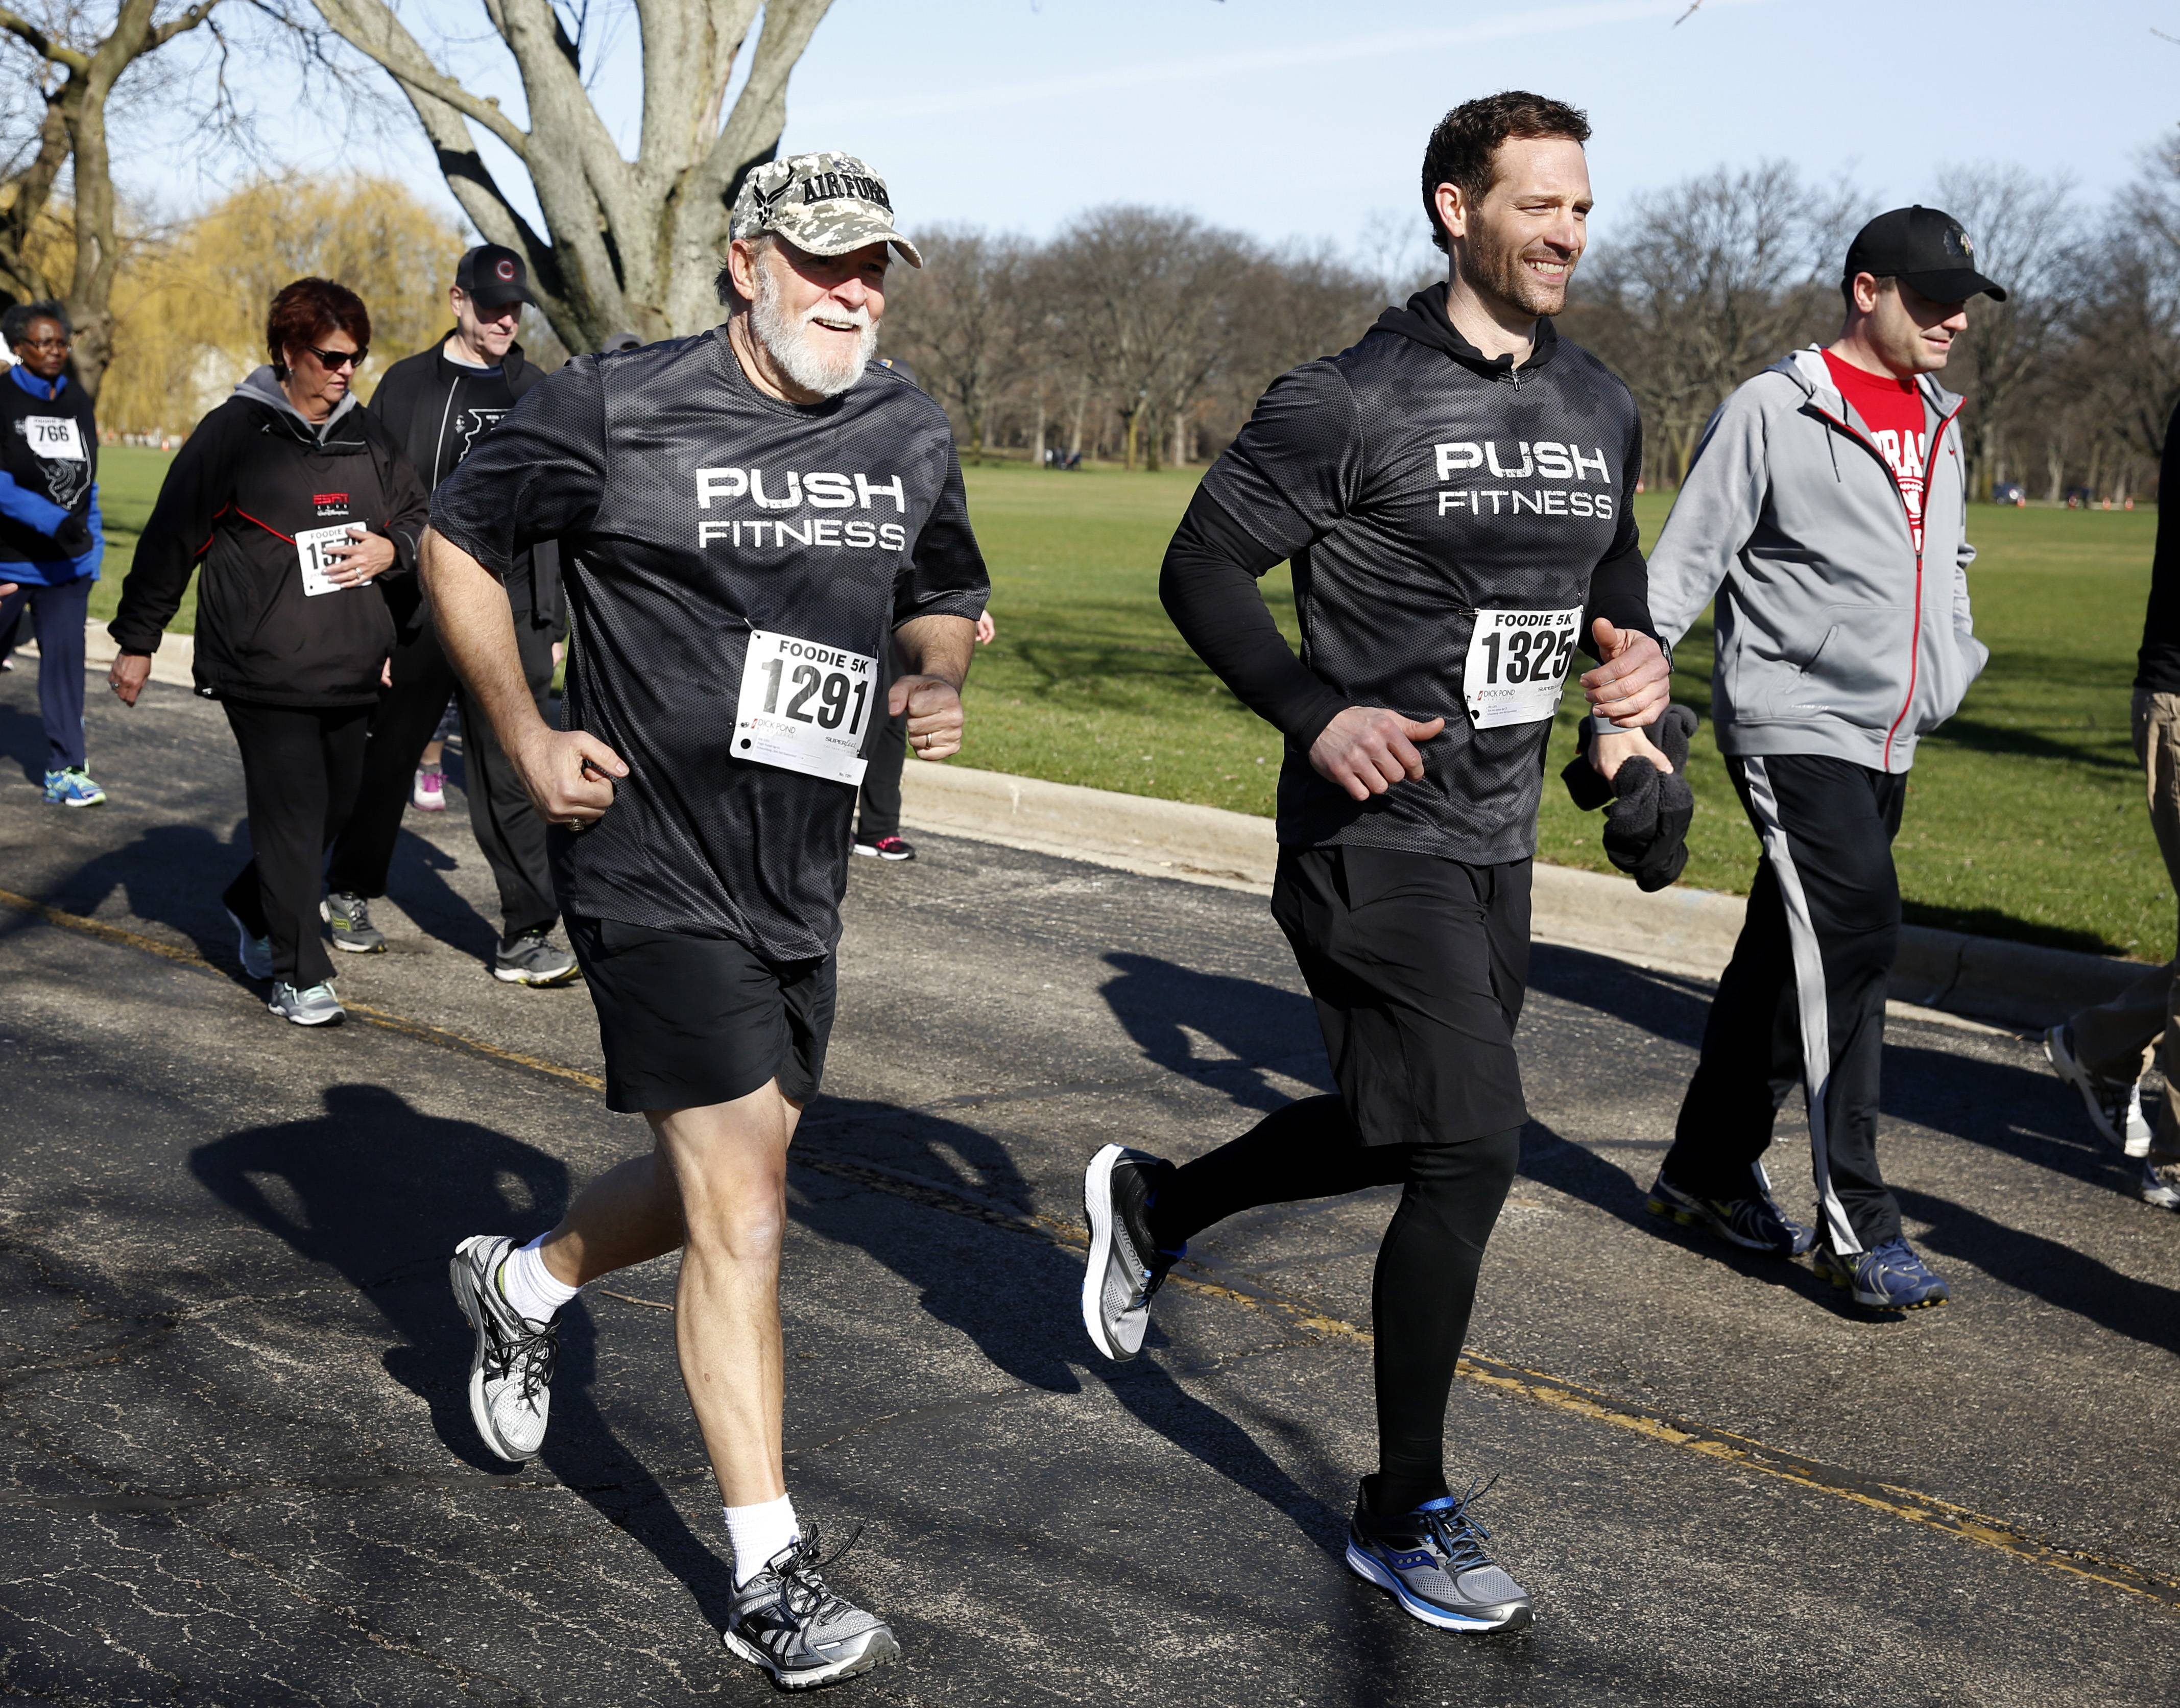 Russ Page, Fittest Loser contestant, runs with Push Fitness owner Josh Steckler in the Foodie 5K run at Cantigny Park in Wheaton.